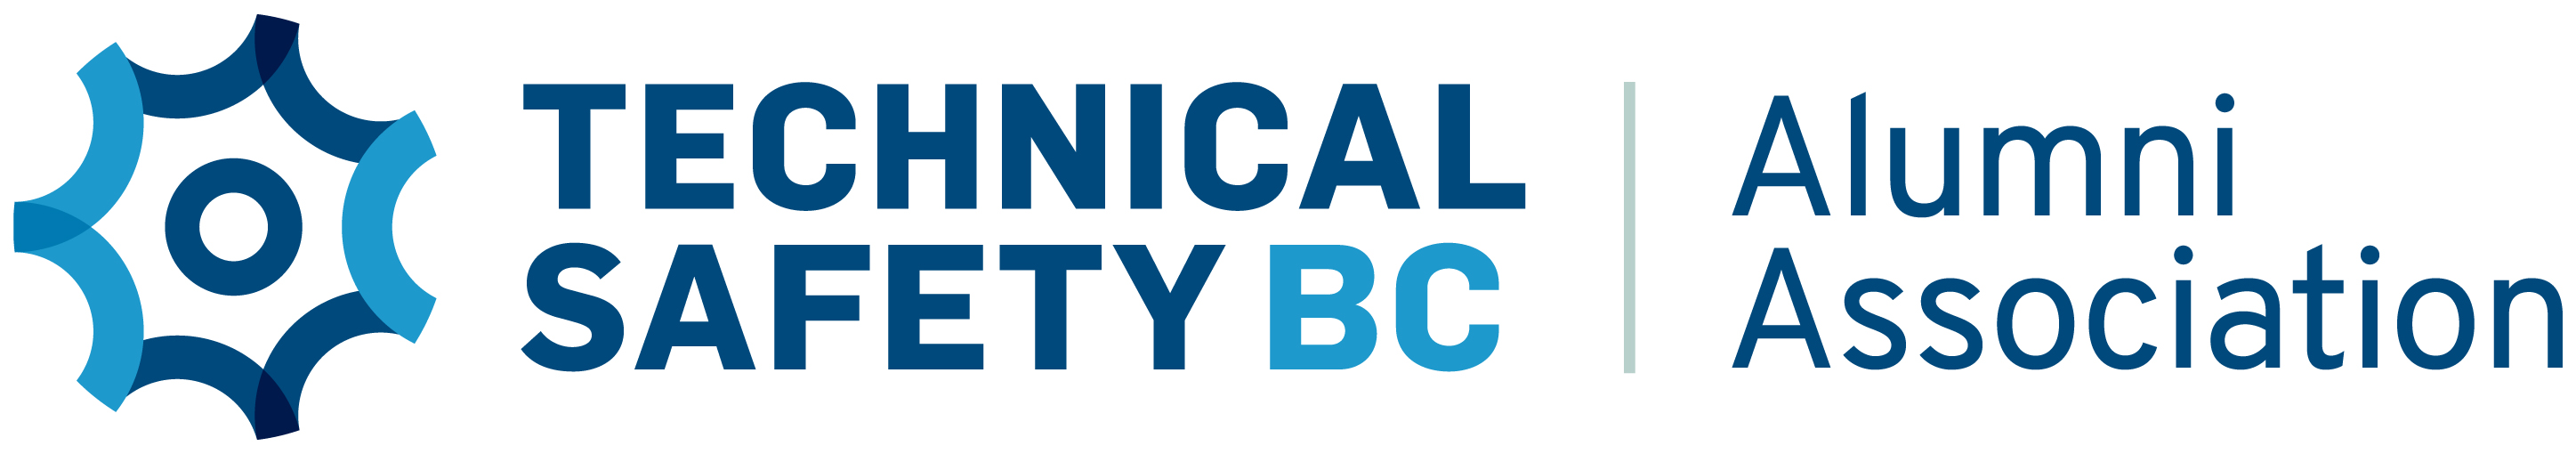 Technical Safety BC Alumni Association